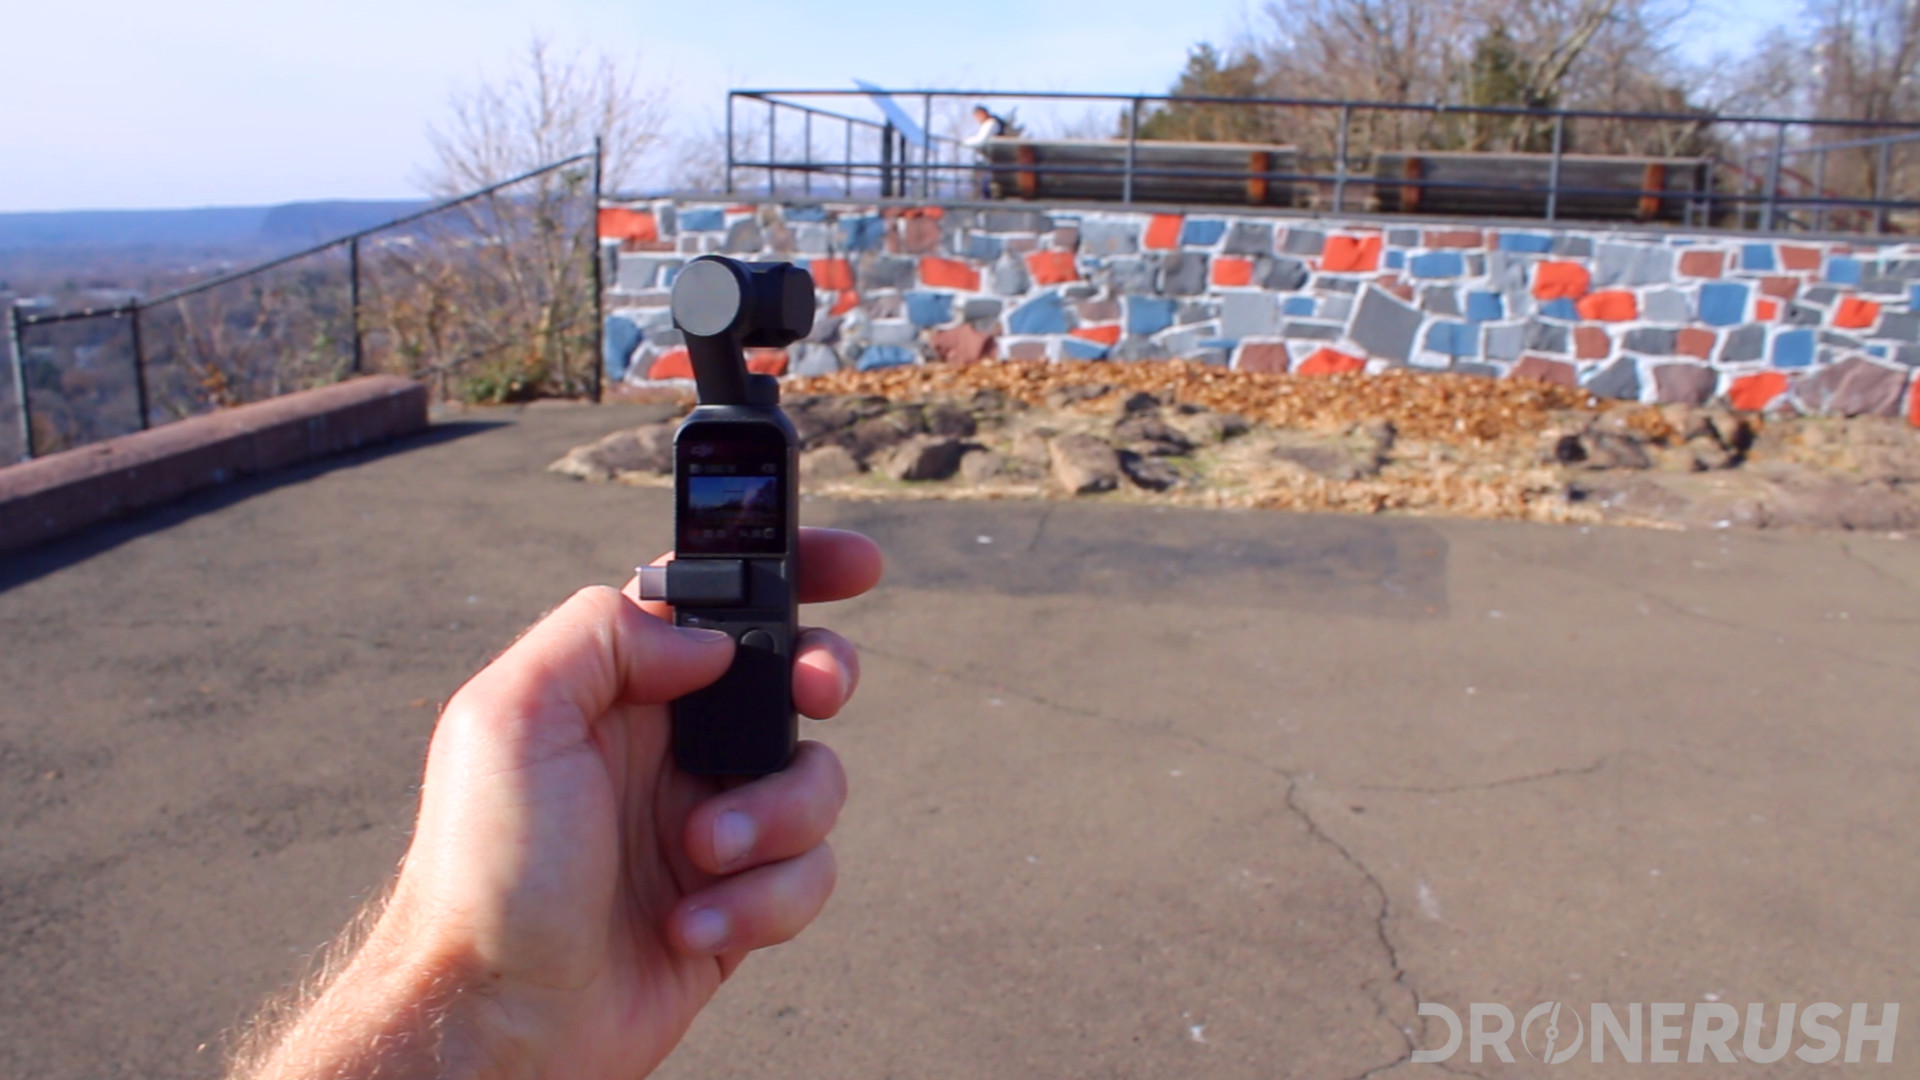 DJI Osmo Pocket photo of wall